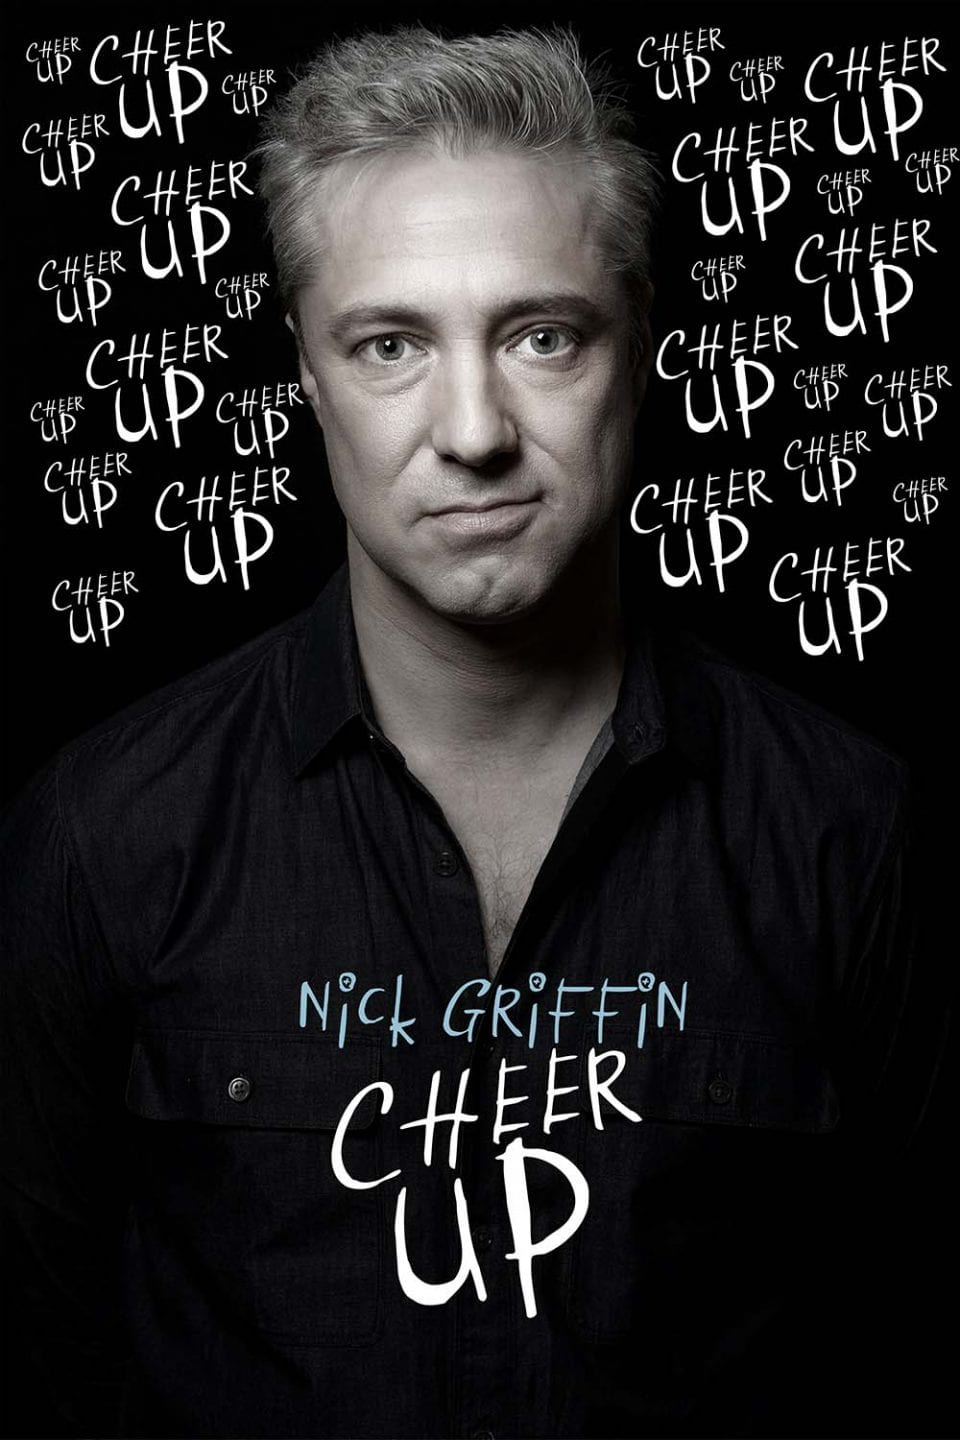 NickGriffin CheerUp Premiere x